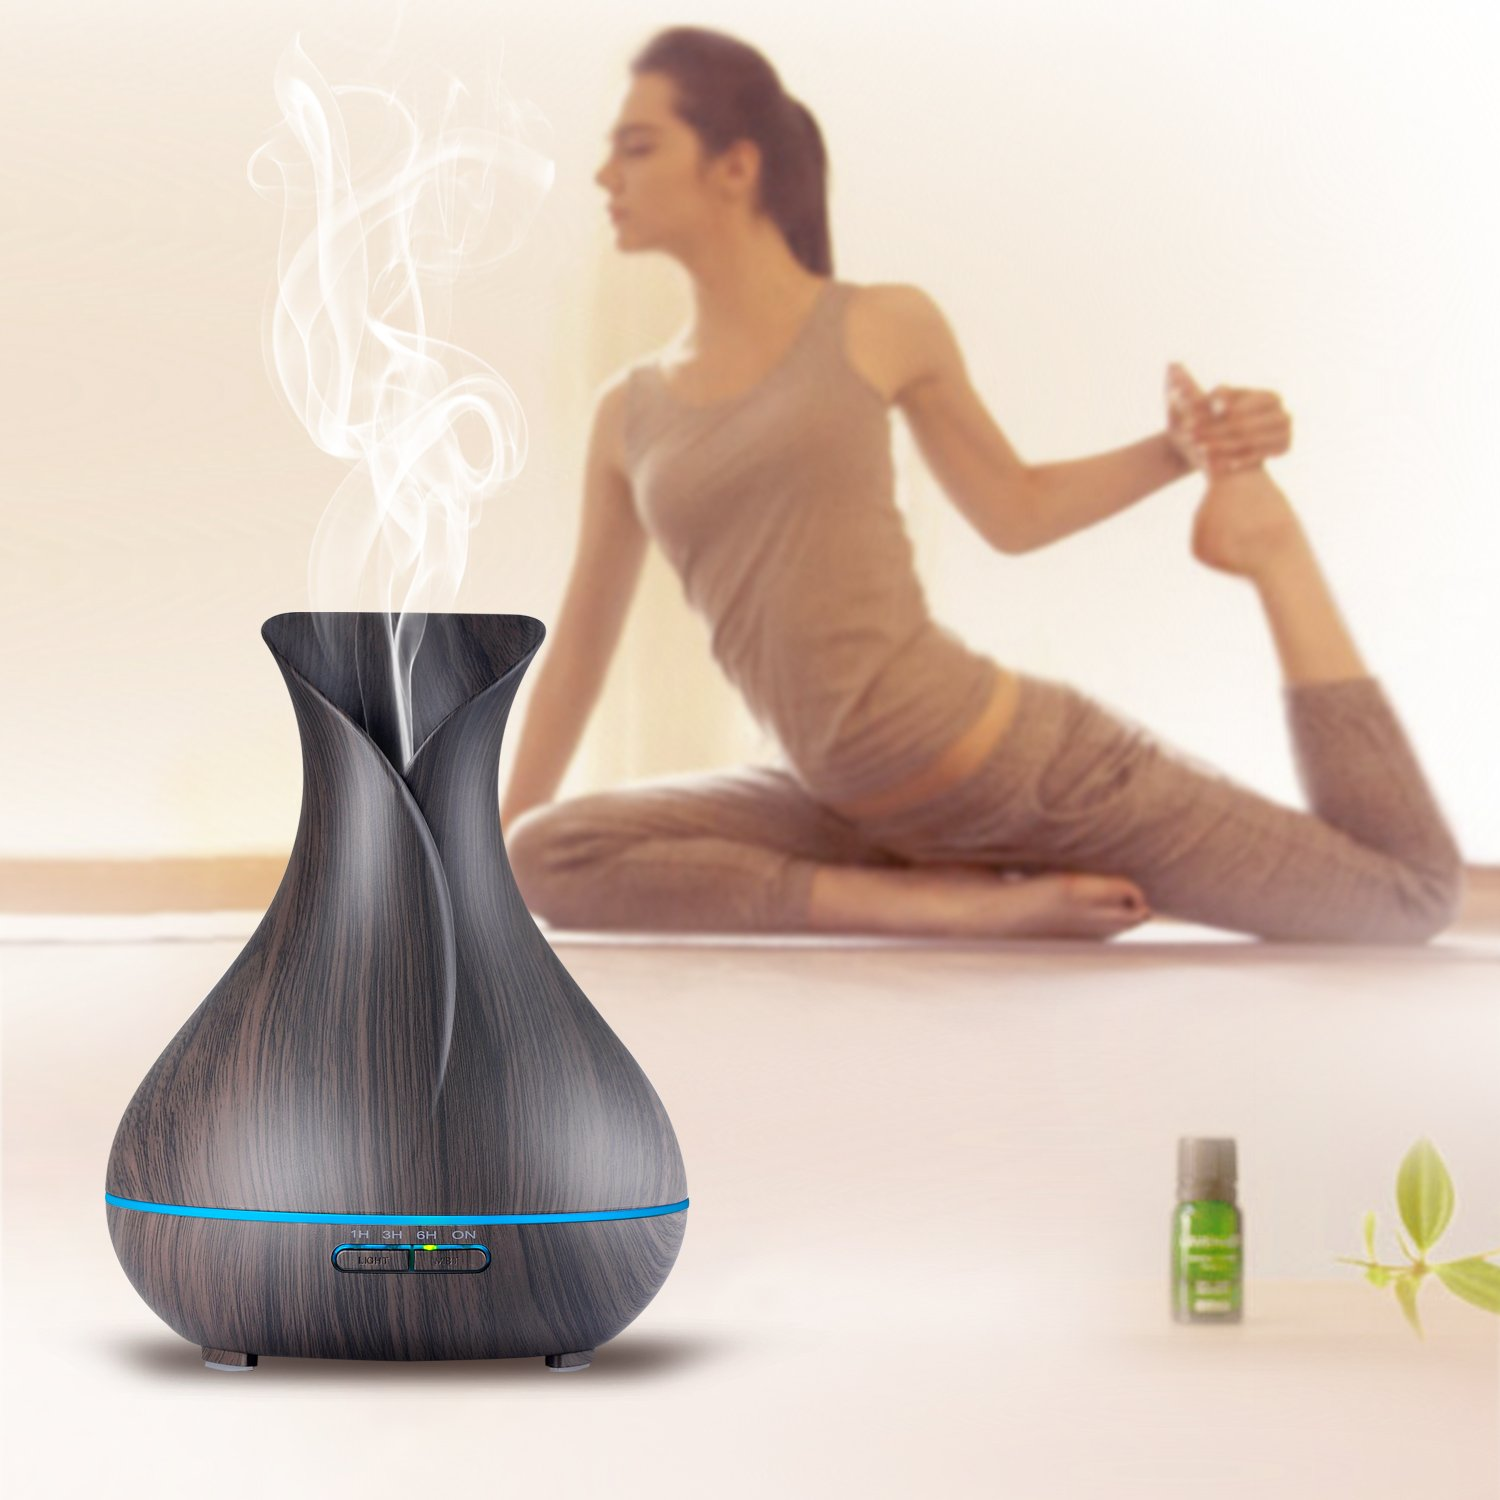 OliveTech Aroma Essential Oil Diffuser 400ml Ultrasonic Cool Mist Humidifier with Waterless Auto